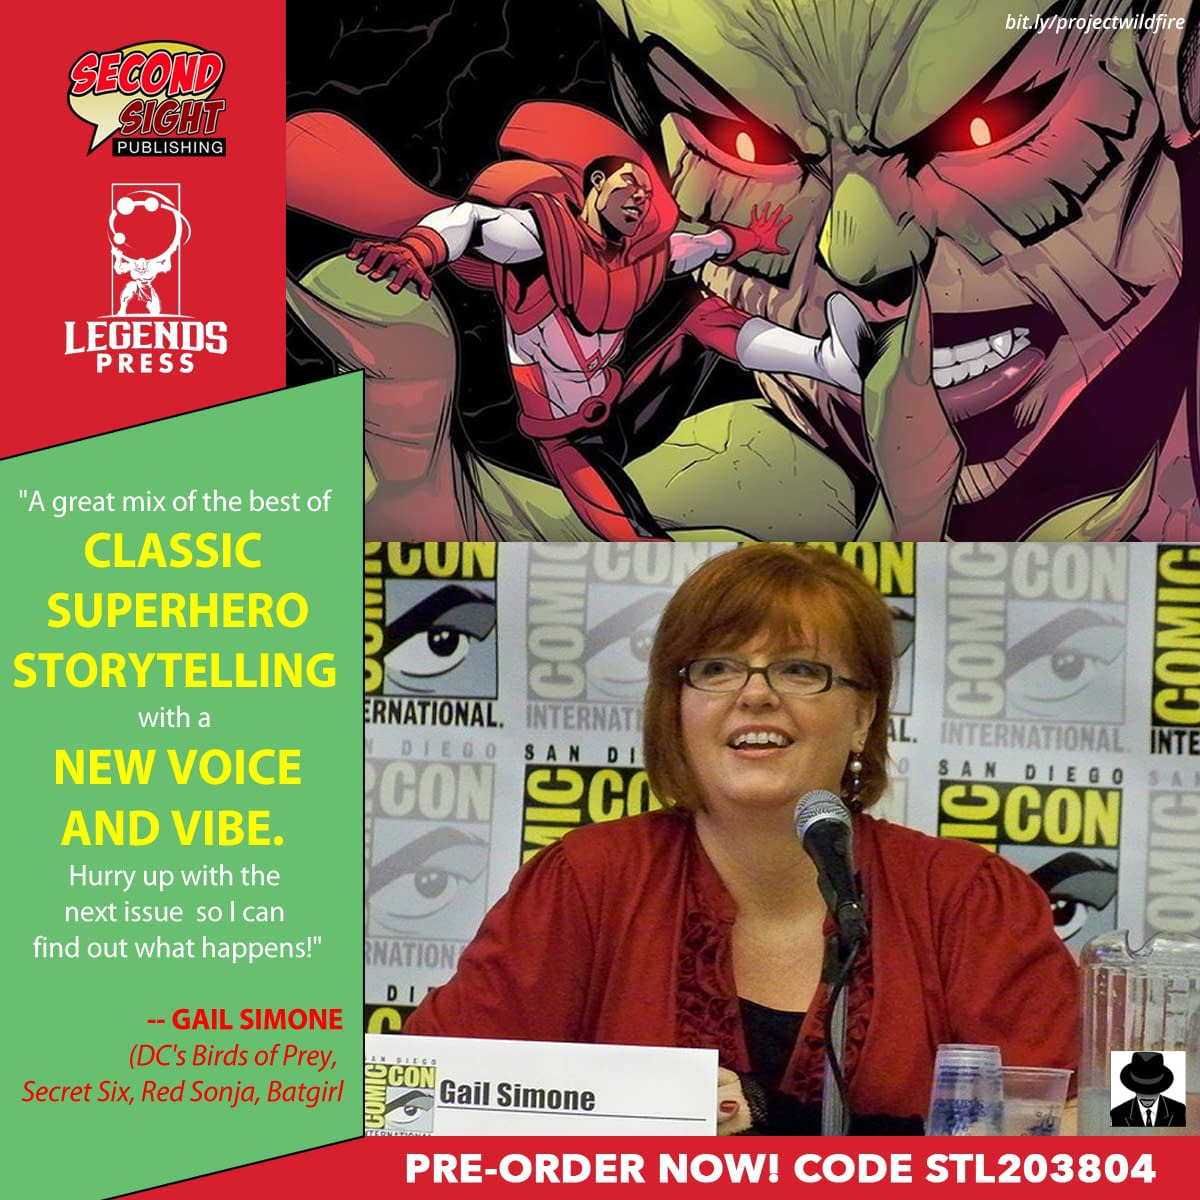 Gail Simone on Project Wildfire